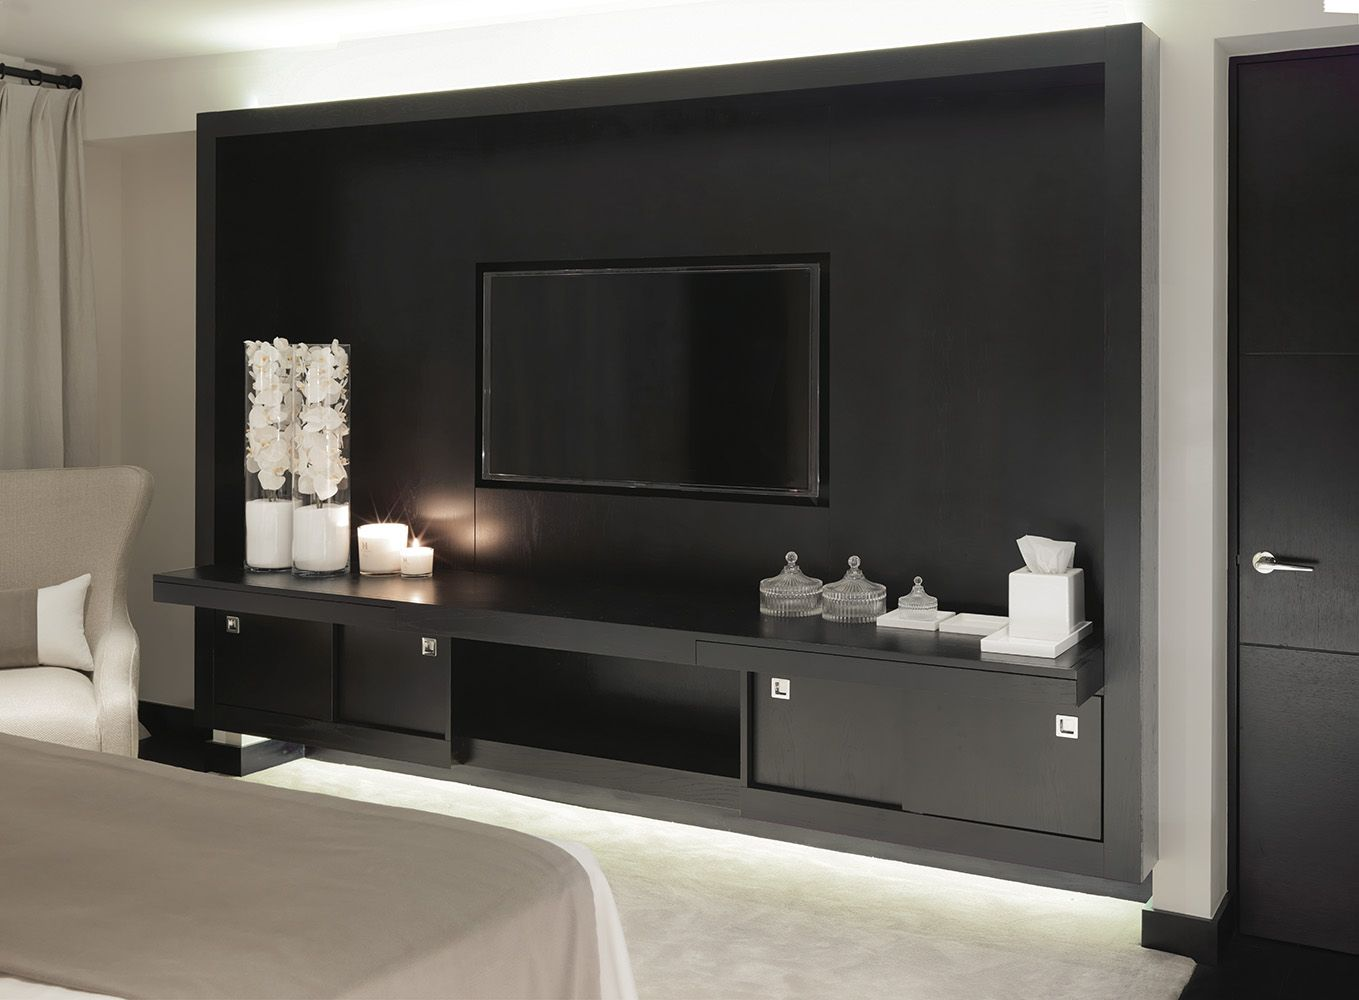 Bedroom media tv wall unit white orchids in tall glass tank bedroom media tv wall unit white orchids in tall glass tank vases taupe and kelly hoppentv reviewsmspy